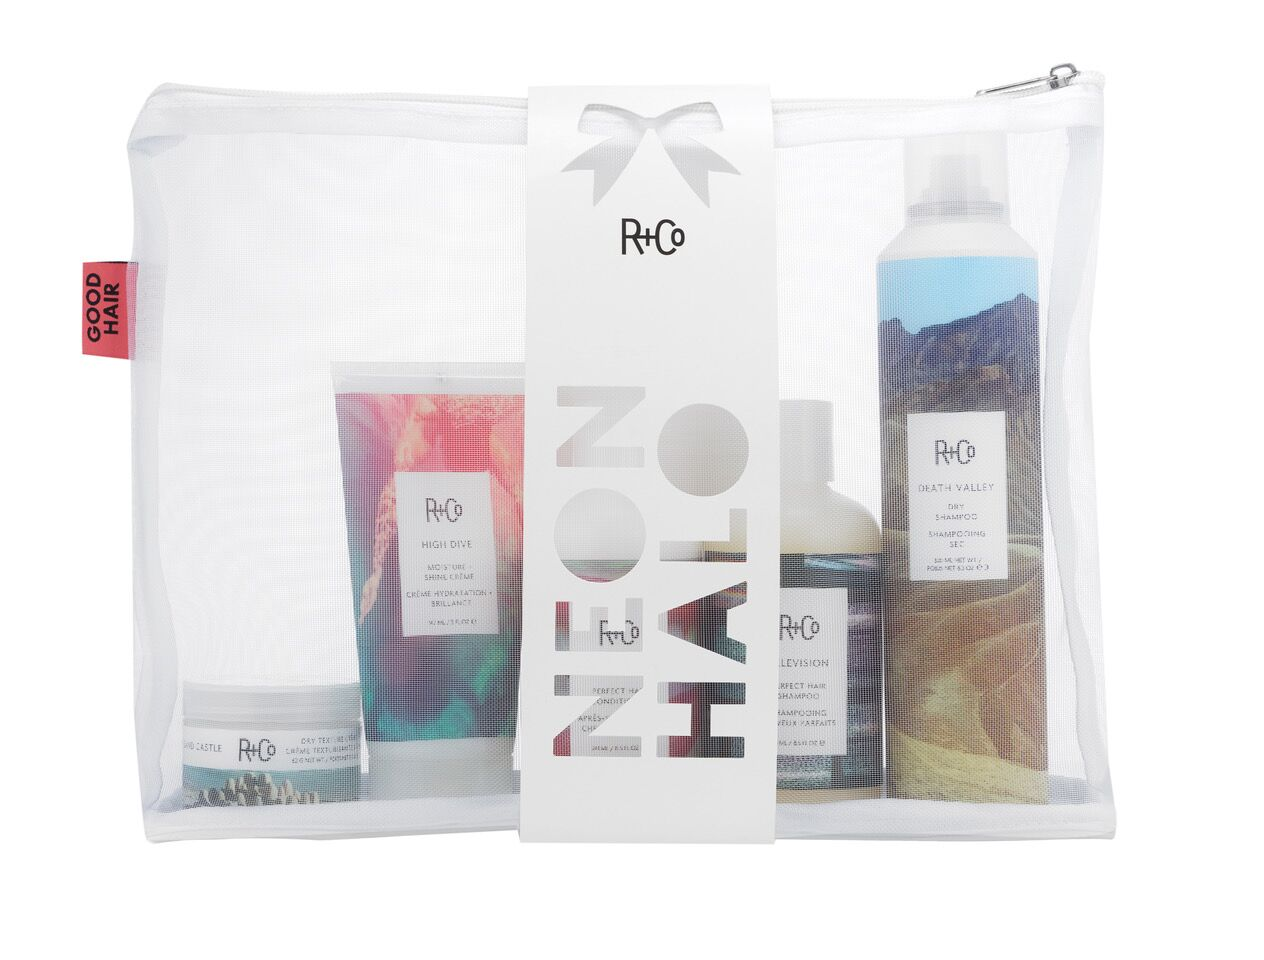 R+Co NEON HALO Holiday Kit/НЕОНОВЫЙ НИМБ набор 241мл+241мл+147мл+62г+300мл